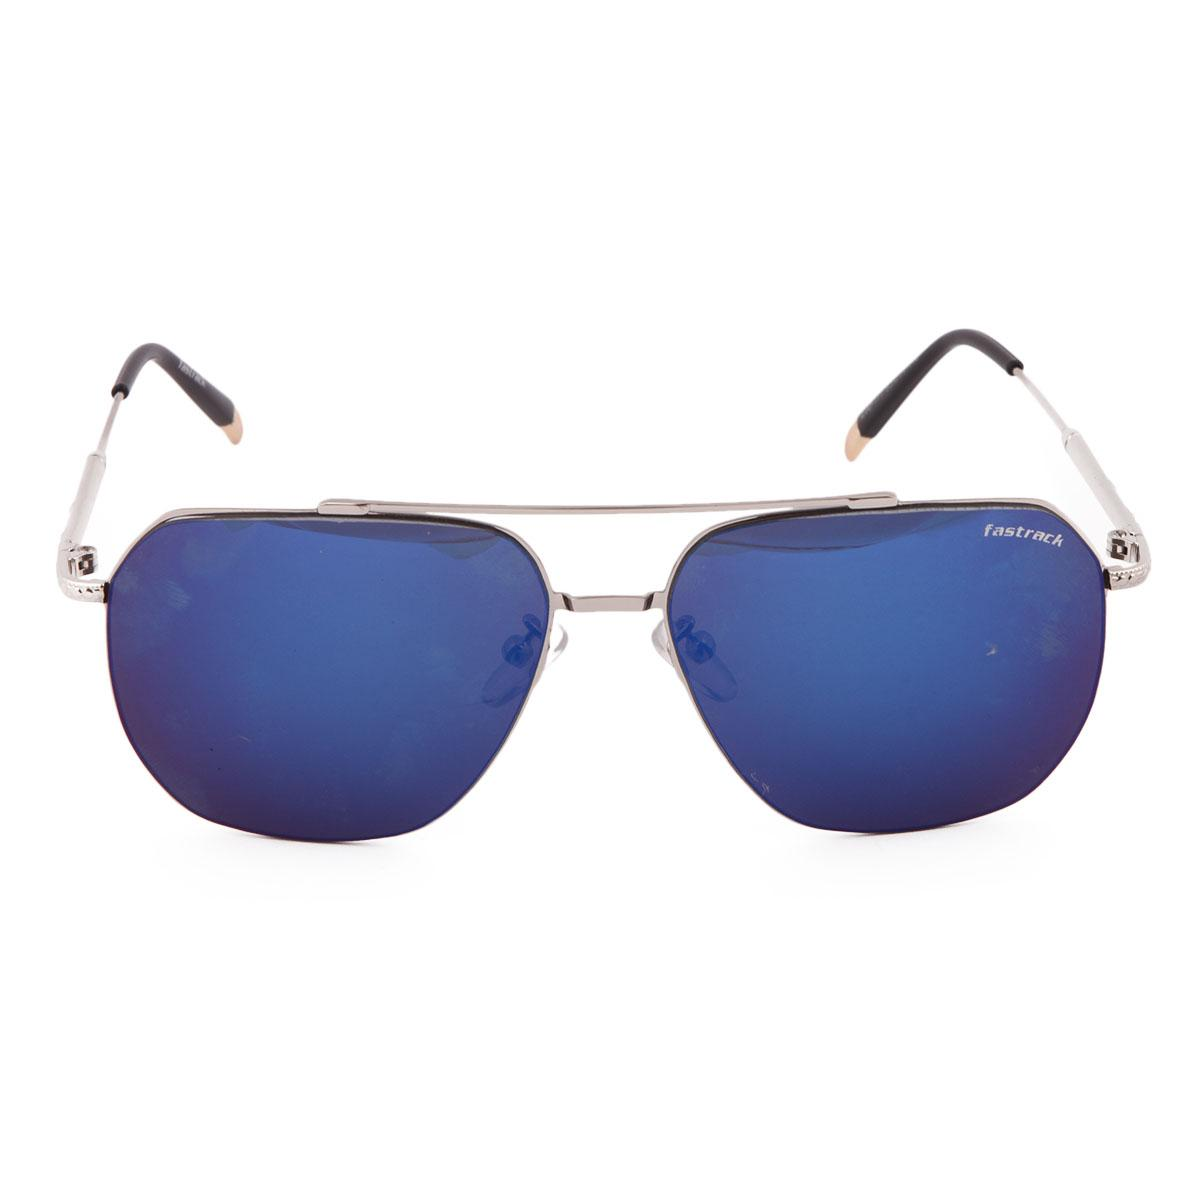 b0c1e2f39d Buy Fastrack mens sunglasses at Best Prices Online in Bangladesh ...